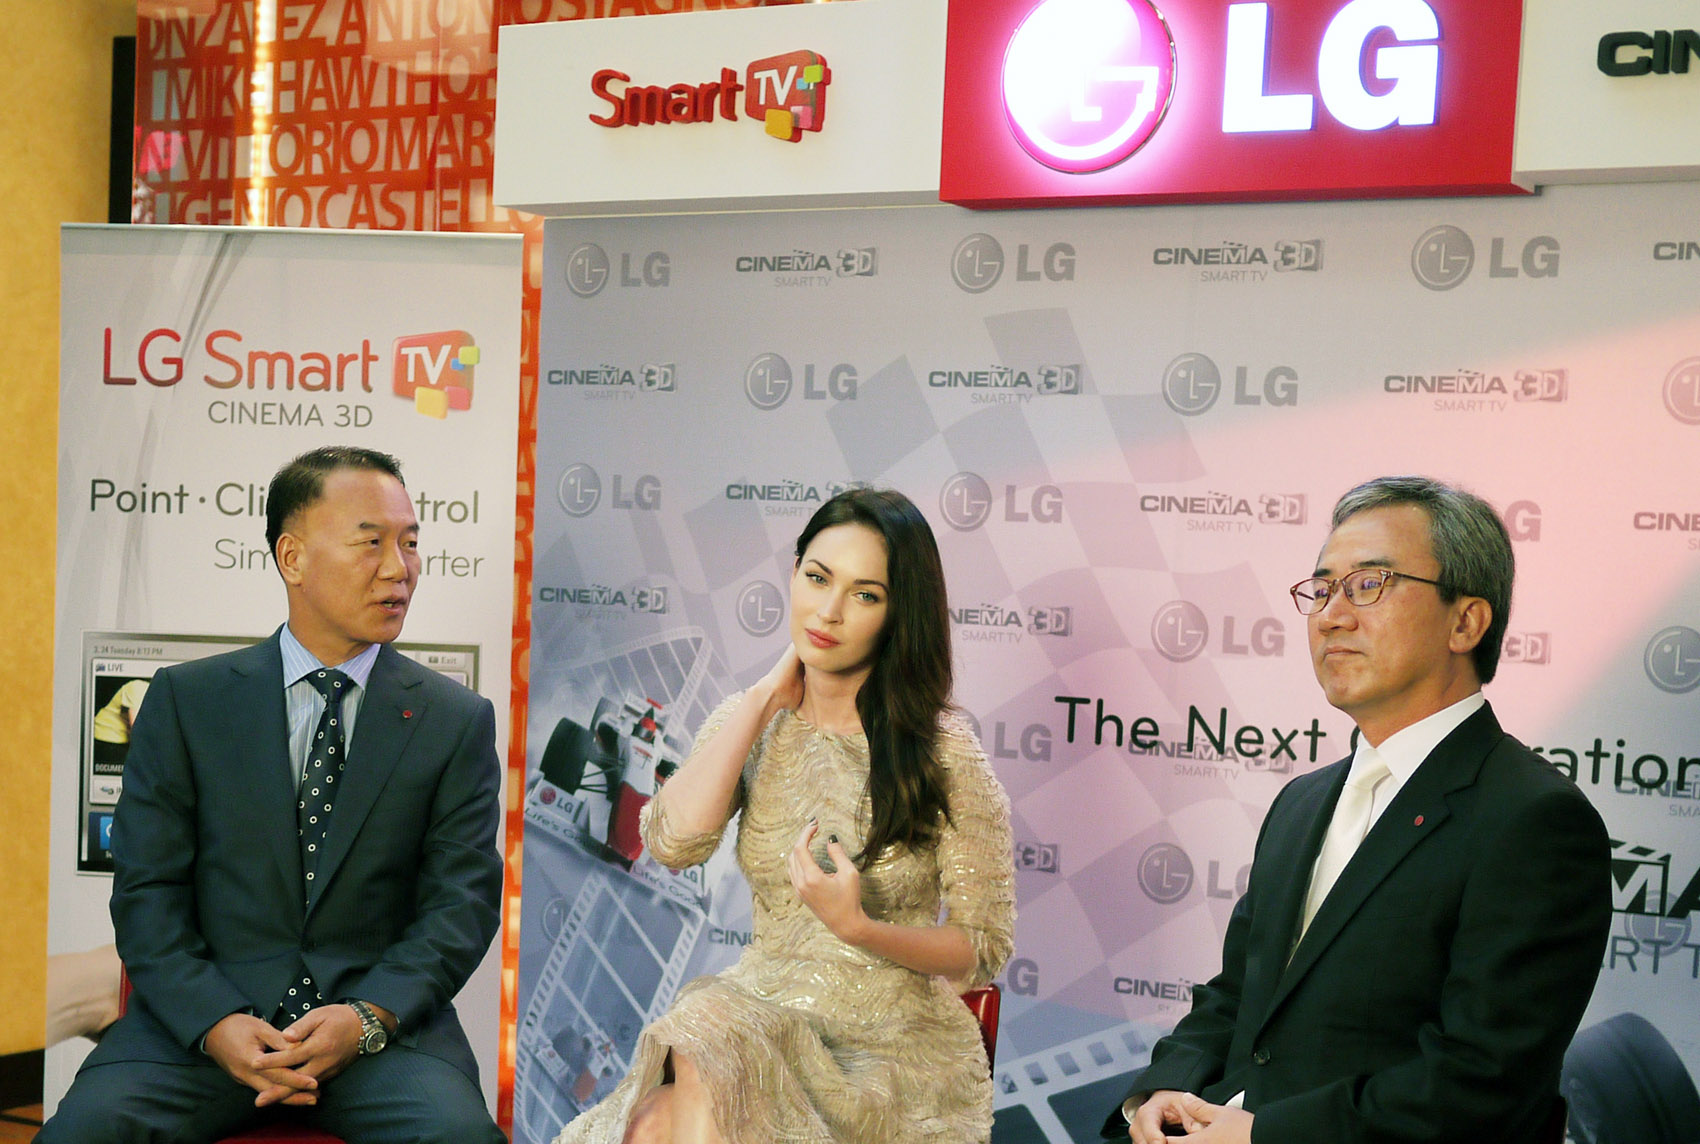 K.W. Kim, president of LG Electronics, Middle East and Africa, Hollywood actress Megan Fox and Kyung-hoon Byun, executive vice president of LG Electronics Home Entertainment Company, at Ferrari World in Abu Dhabi